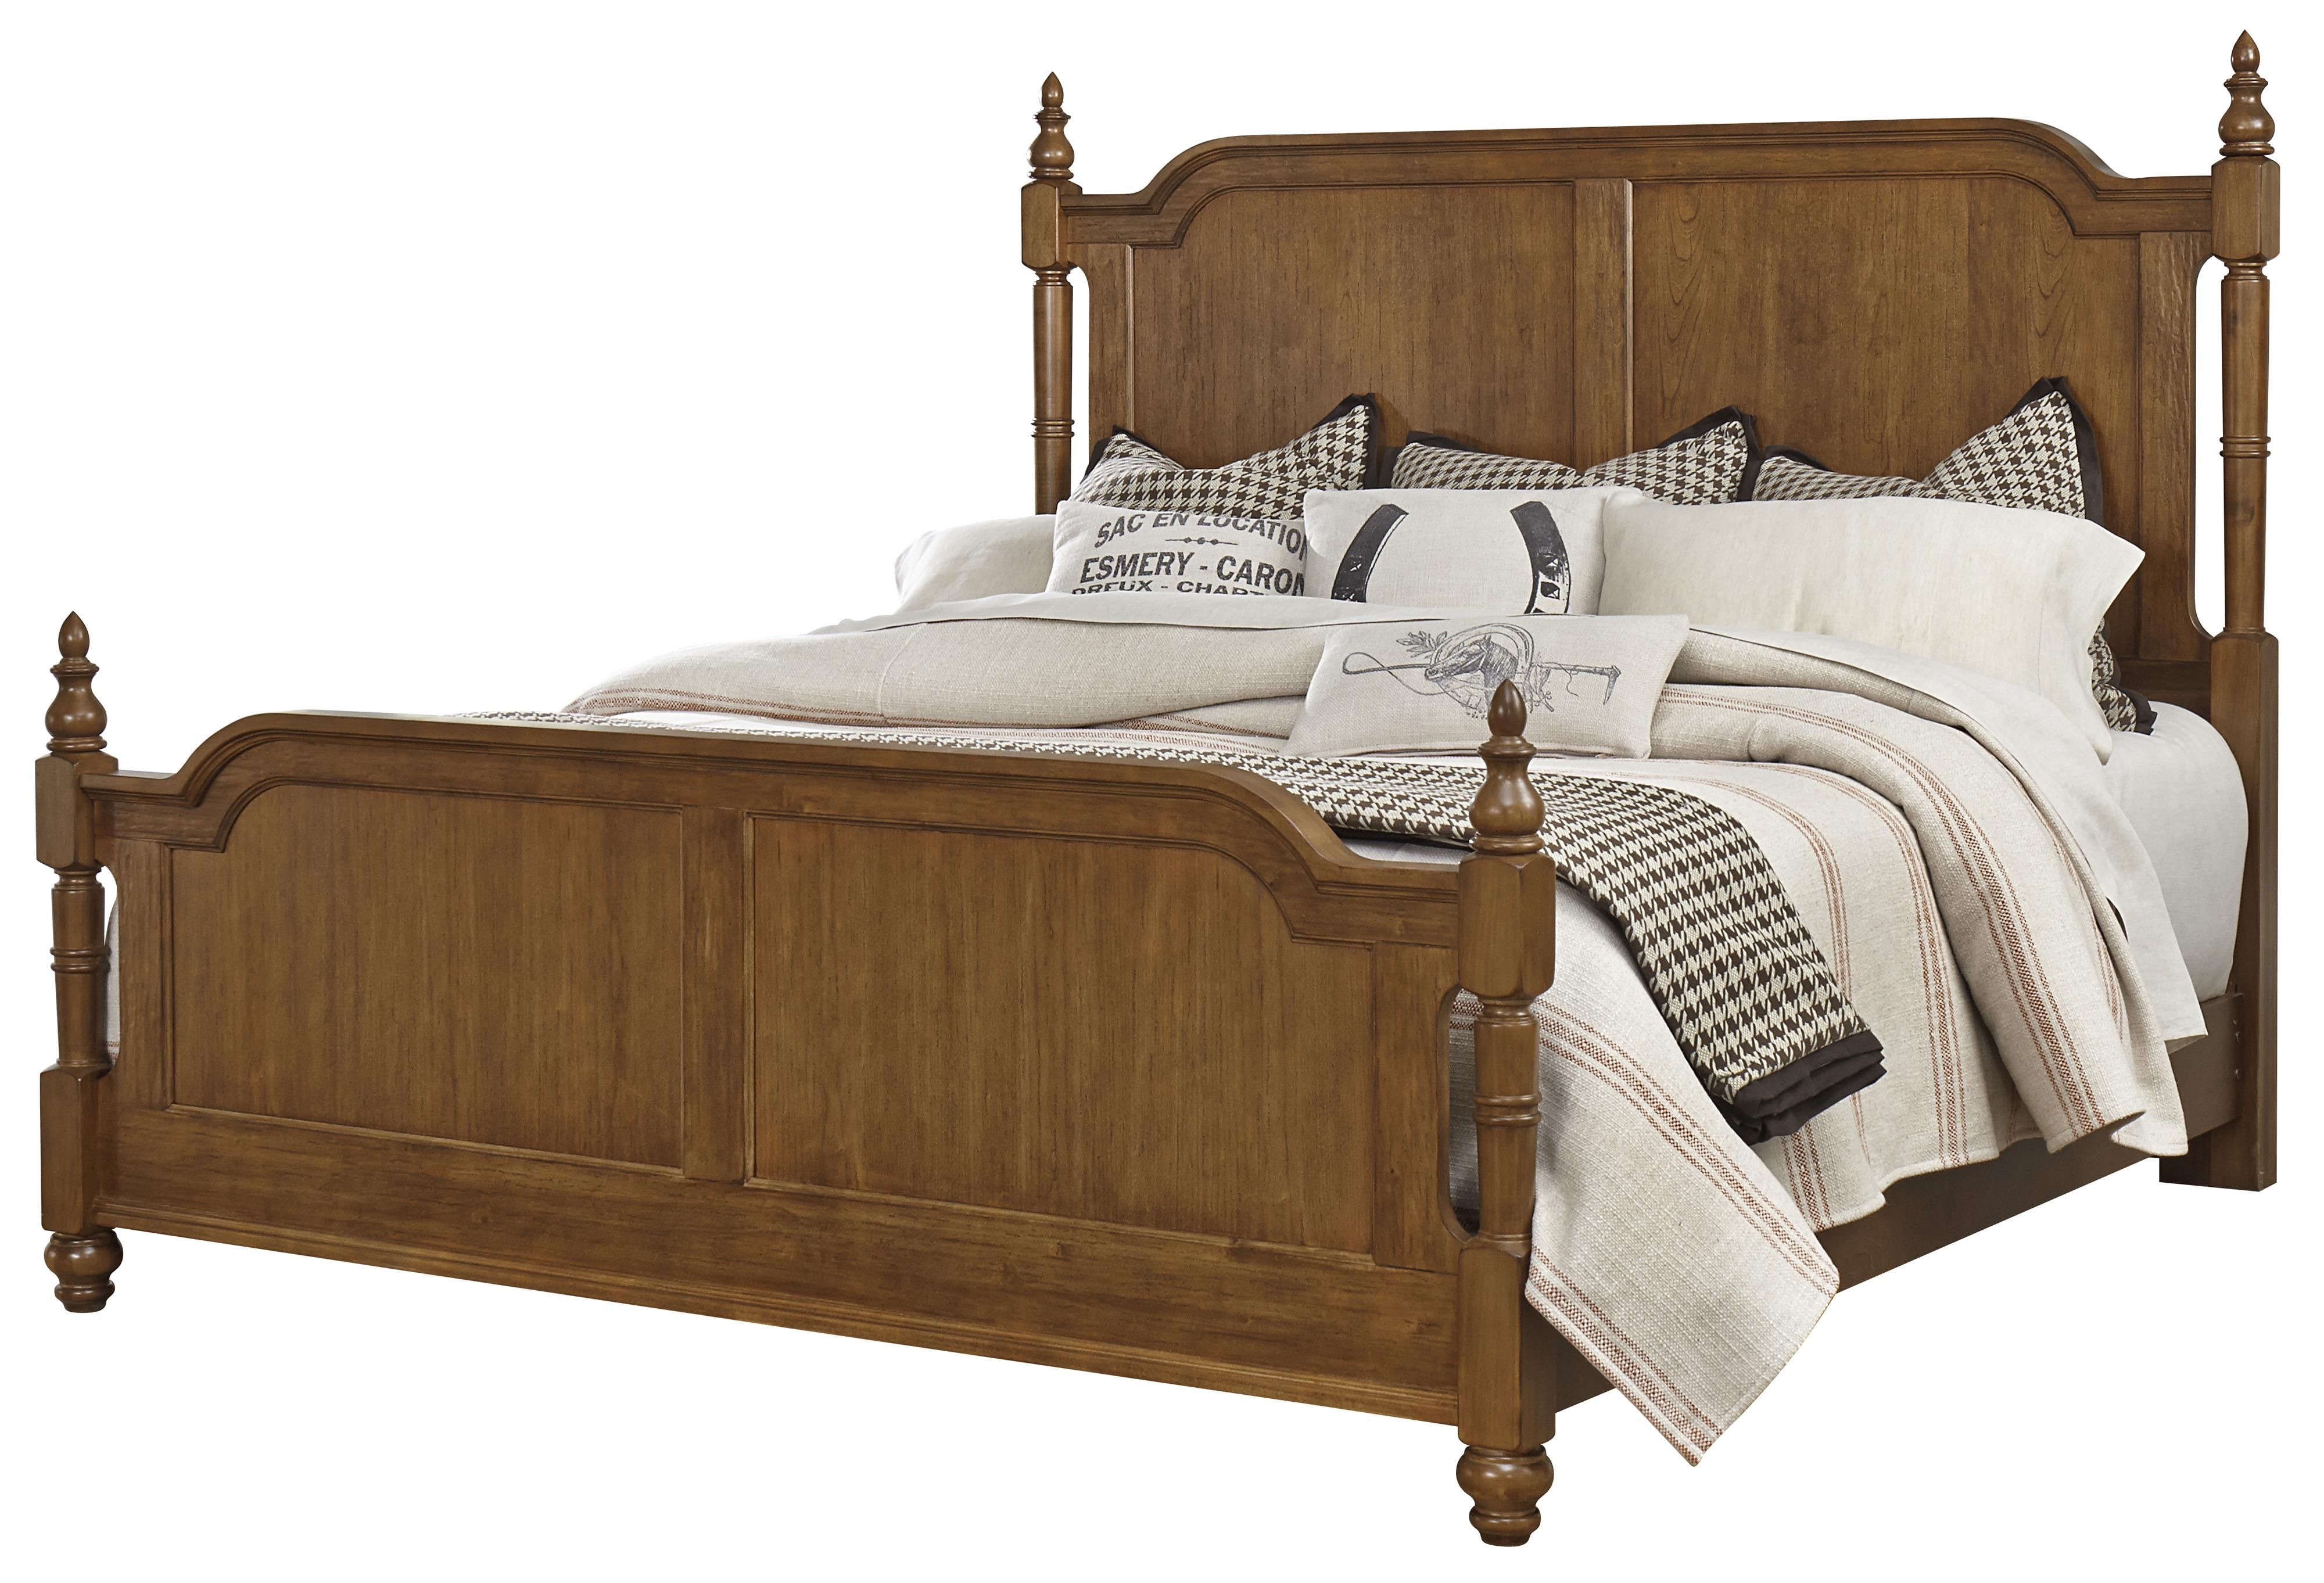 Arrendelle Transitional King Poster Bed By Vaughan Bassett At Knight Furniture Mattress Mattress Furniture King Poster Bed Howell Furniture